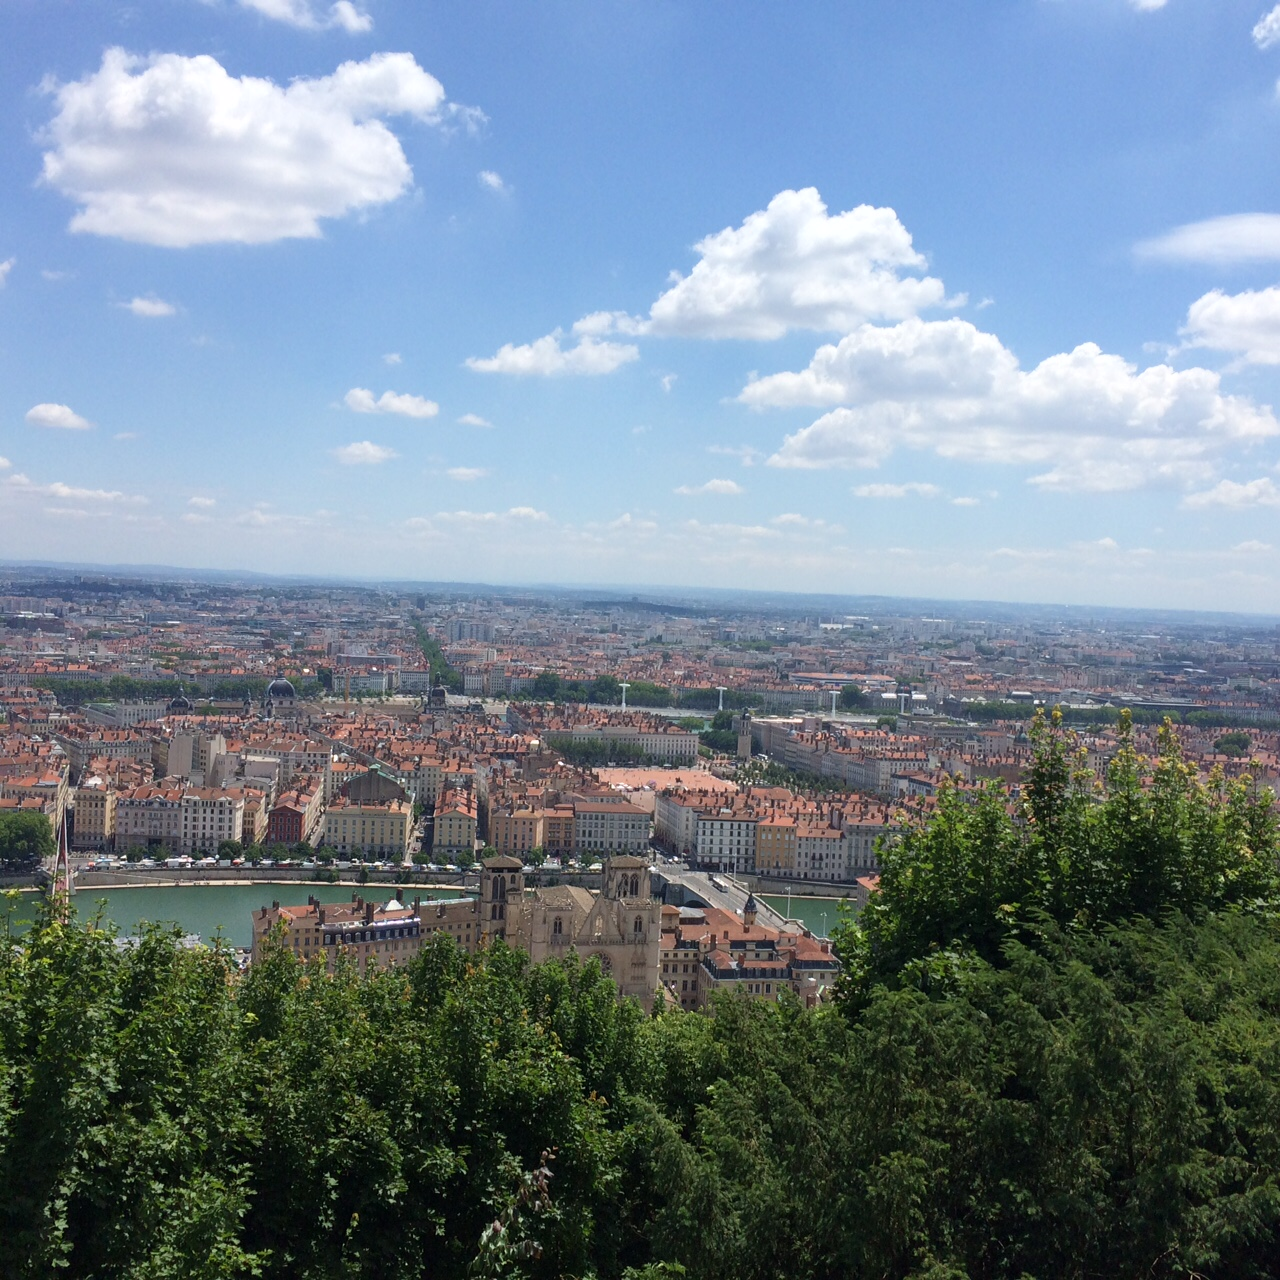 View of Lyon from the highest point outside Basillica in Lyon